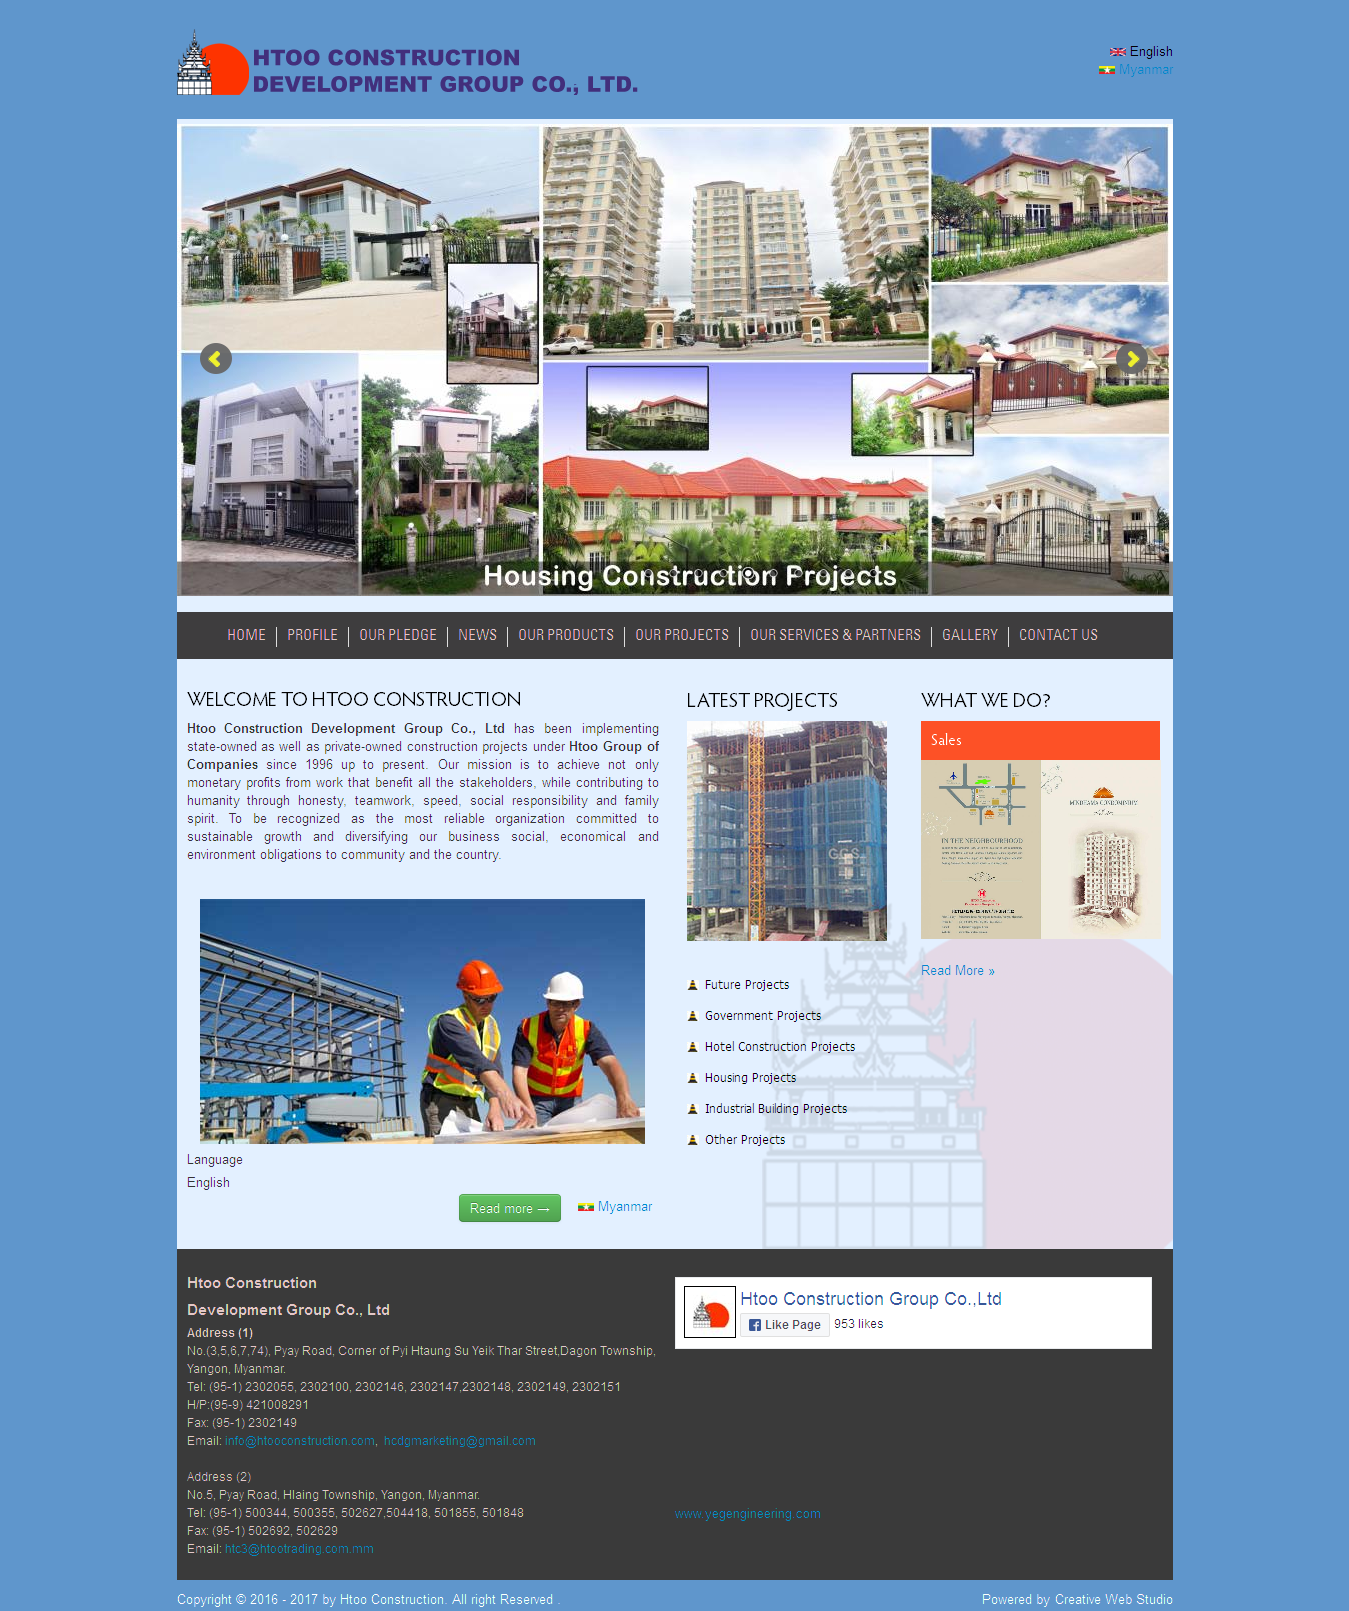 Construction | Creative Web Studio